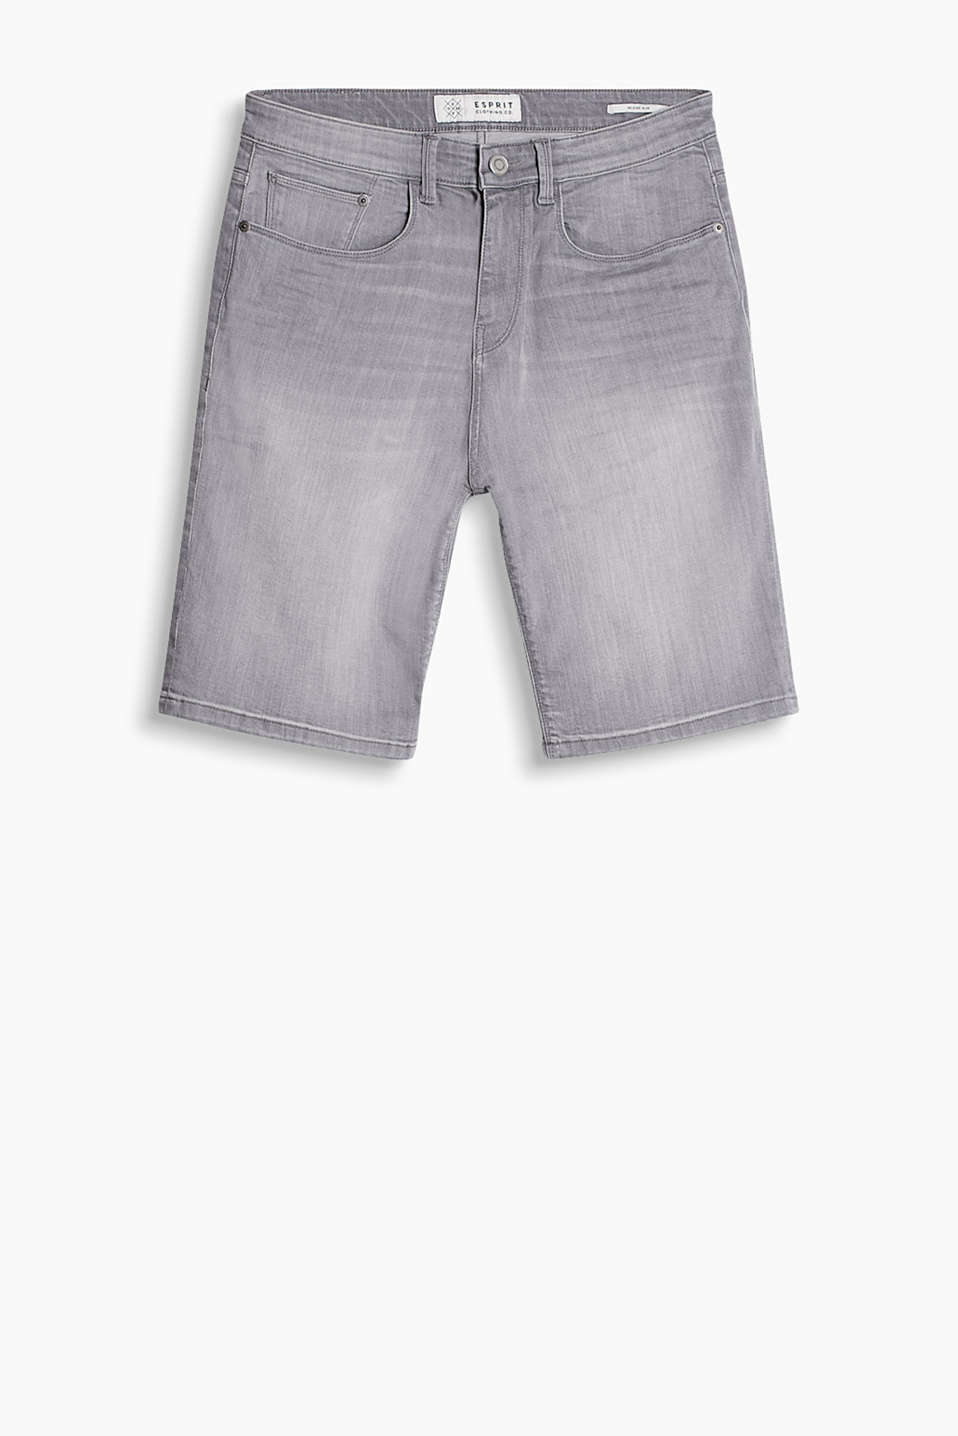 Bermuda short swith a subtle vintage finish in a classic five-pocket style